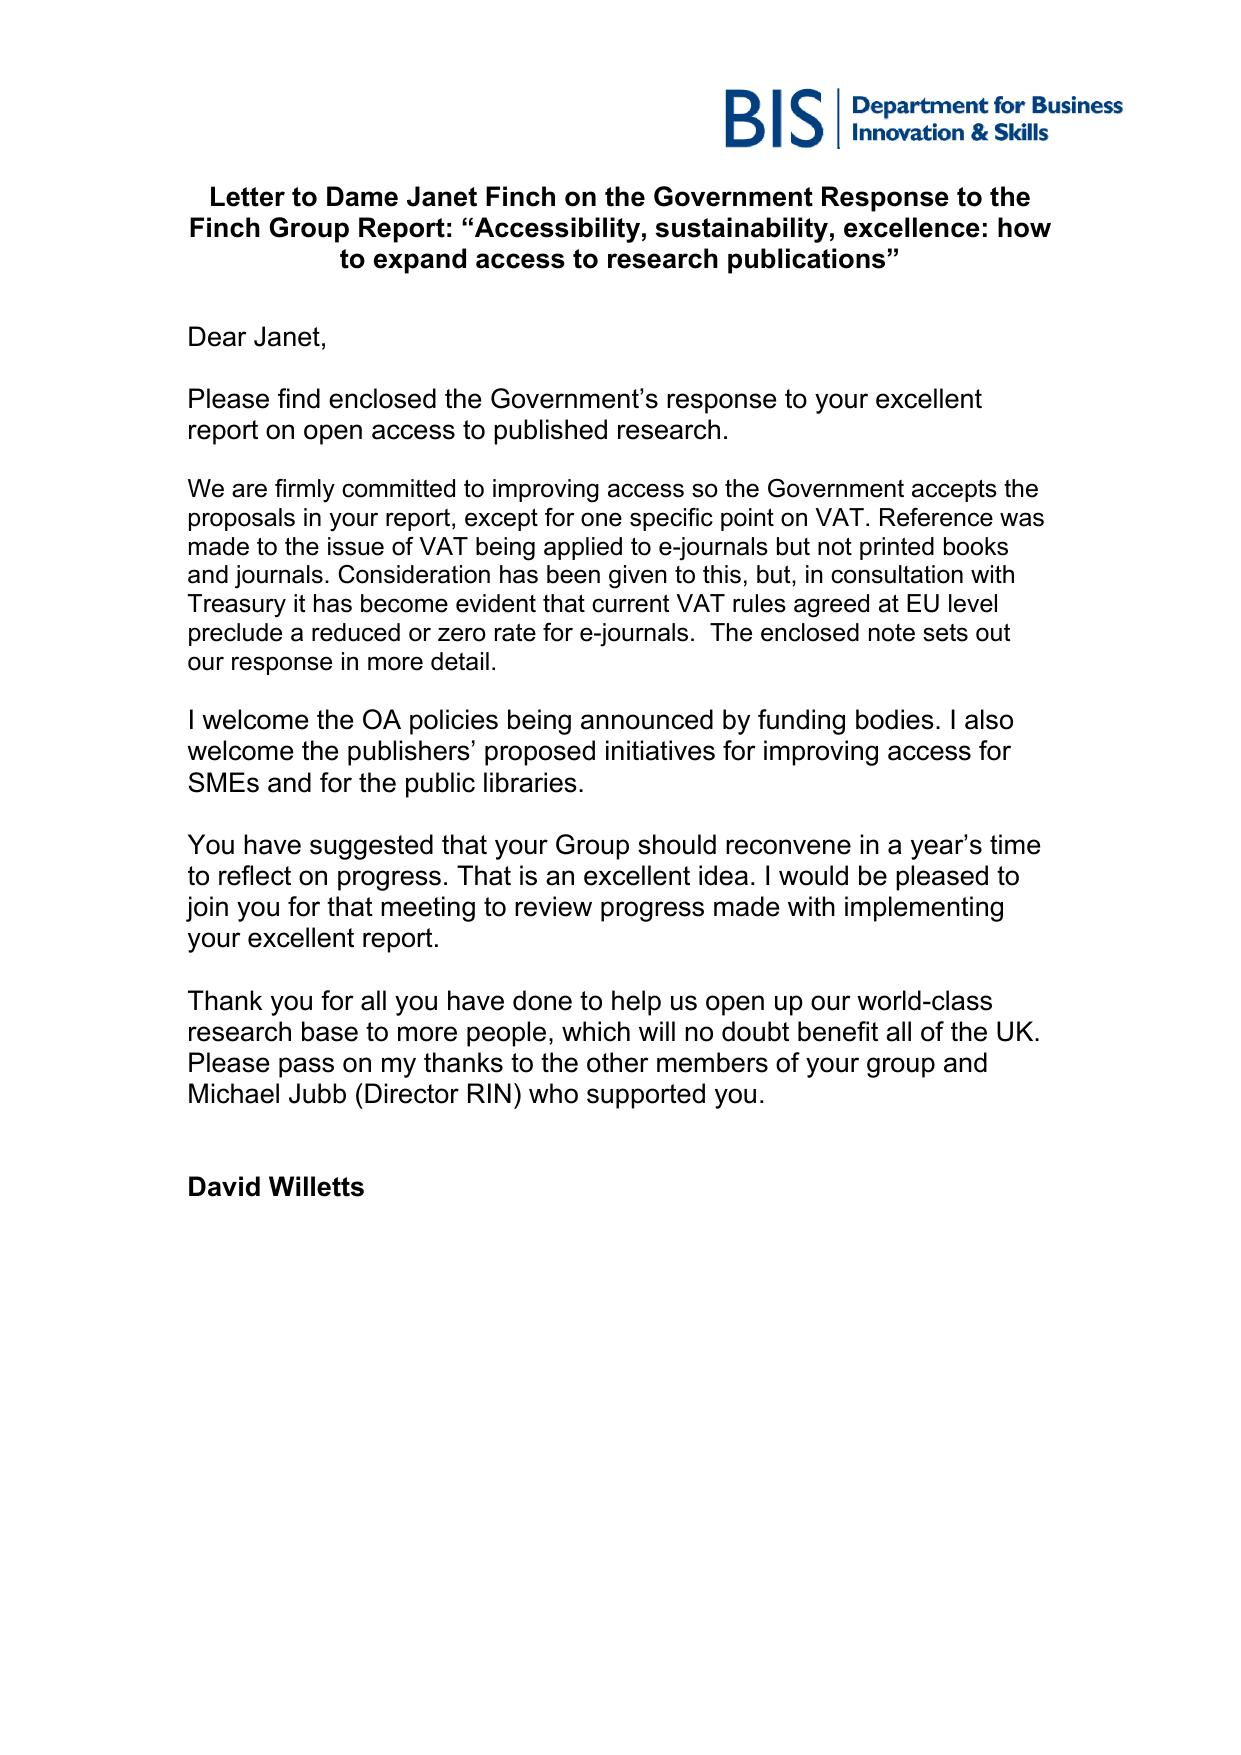 Letter to Dame Janet Finch on the Government response to the Finch Group Report